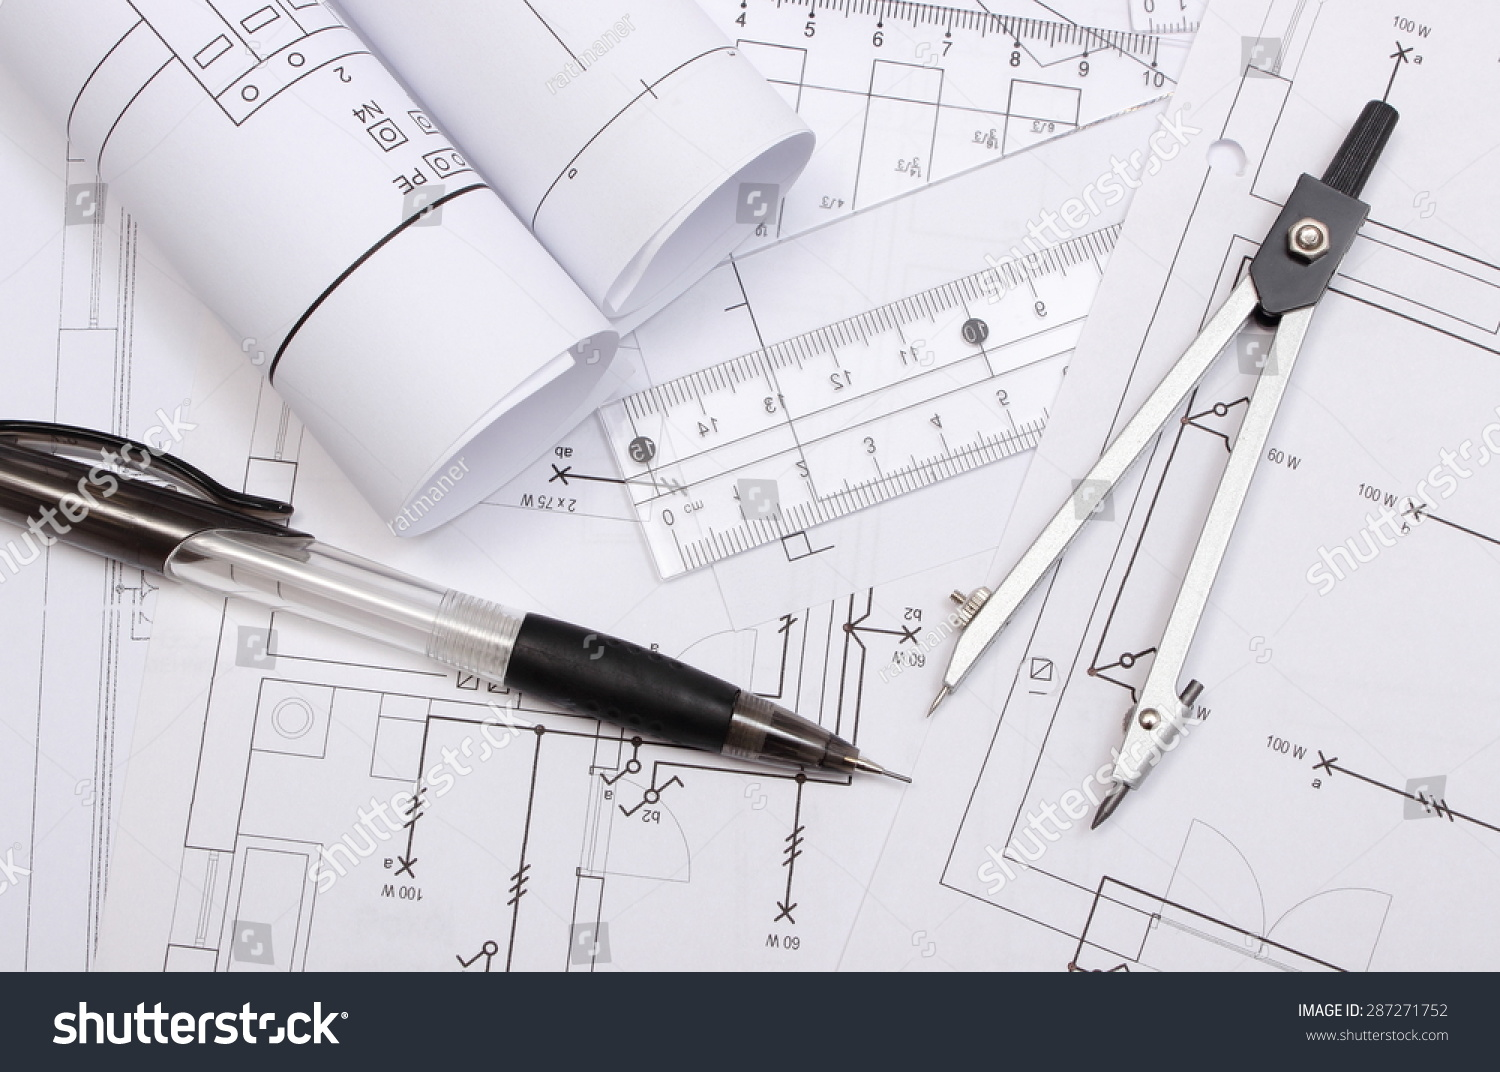 Rolled Electrical Diagrams Accessories Drawing Lying Stock Photo And For On Construction Of House Drawings